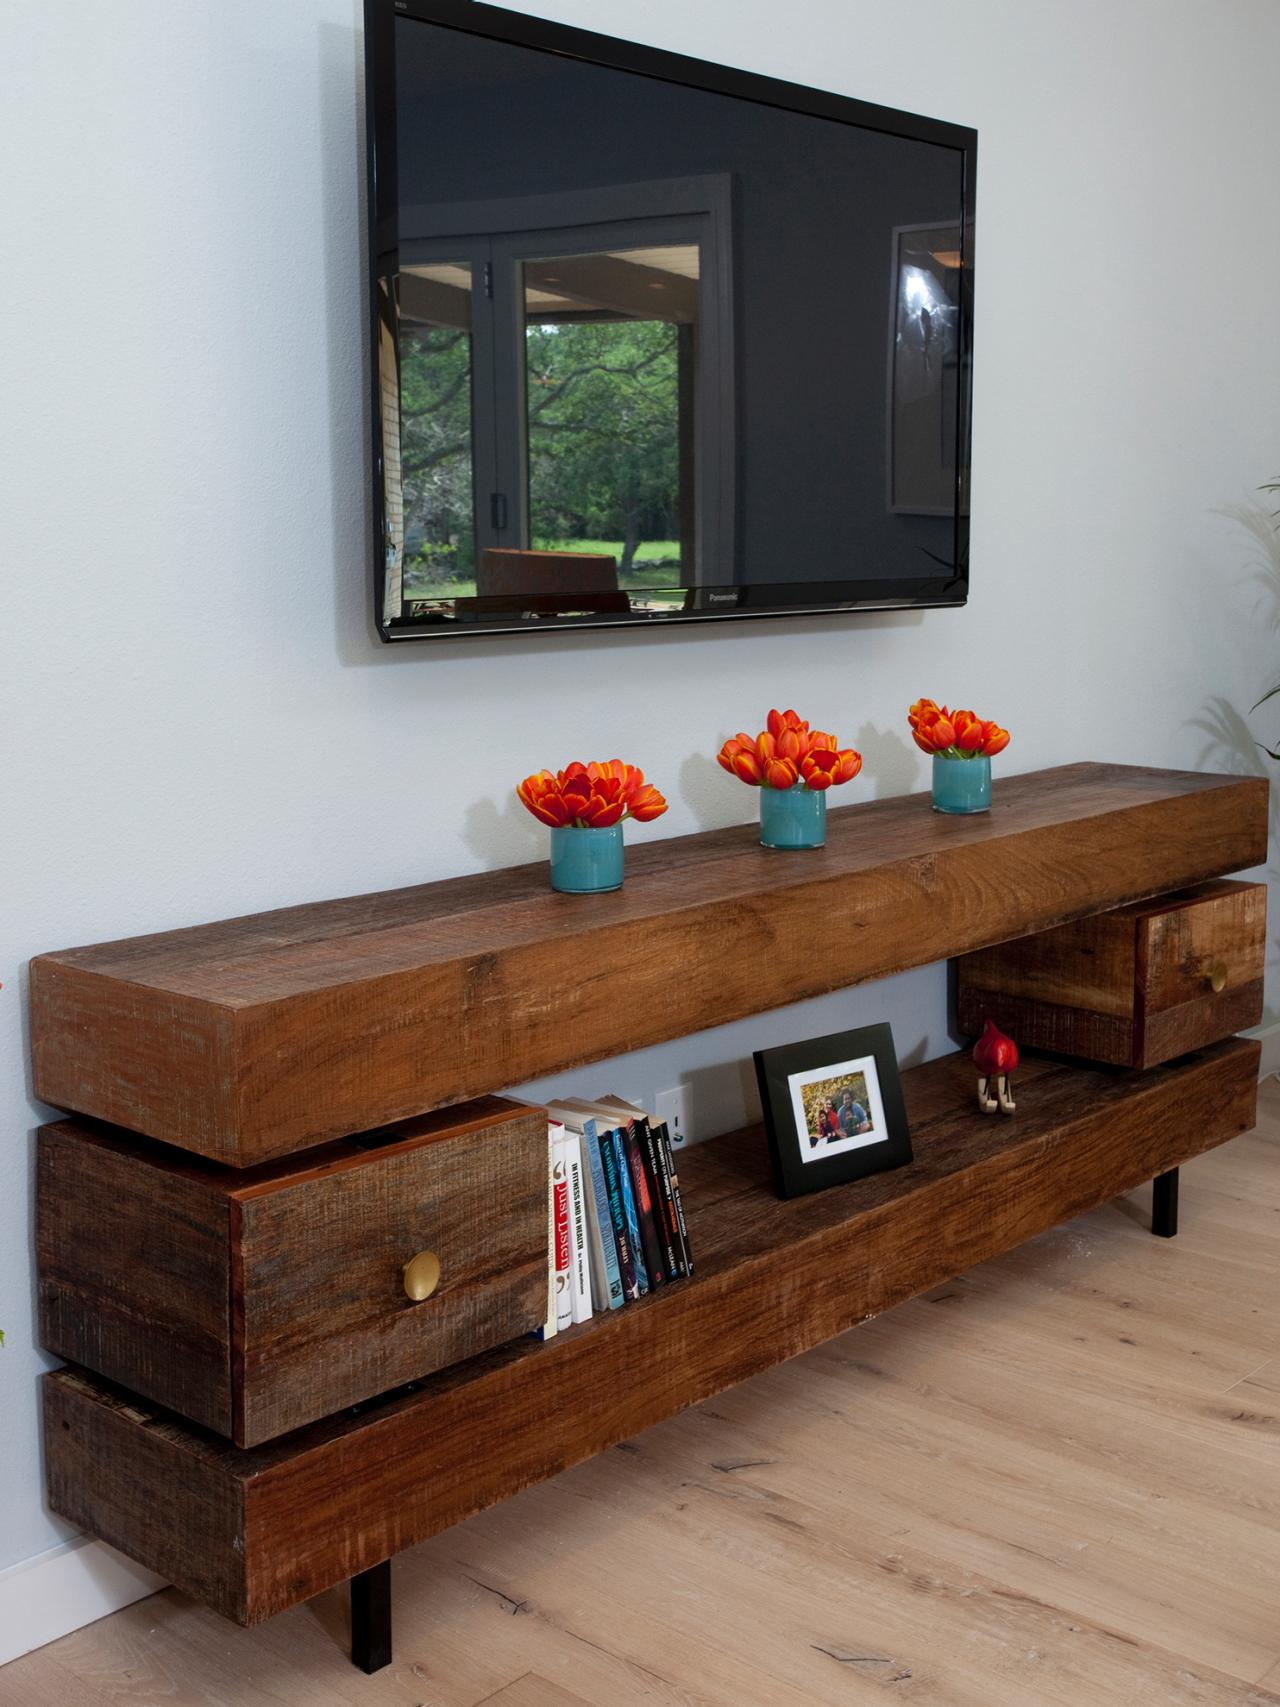 Design For Living Room Tv Cabinet: Long Media Cabinet For Your Living Room